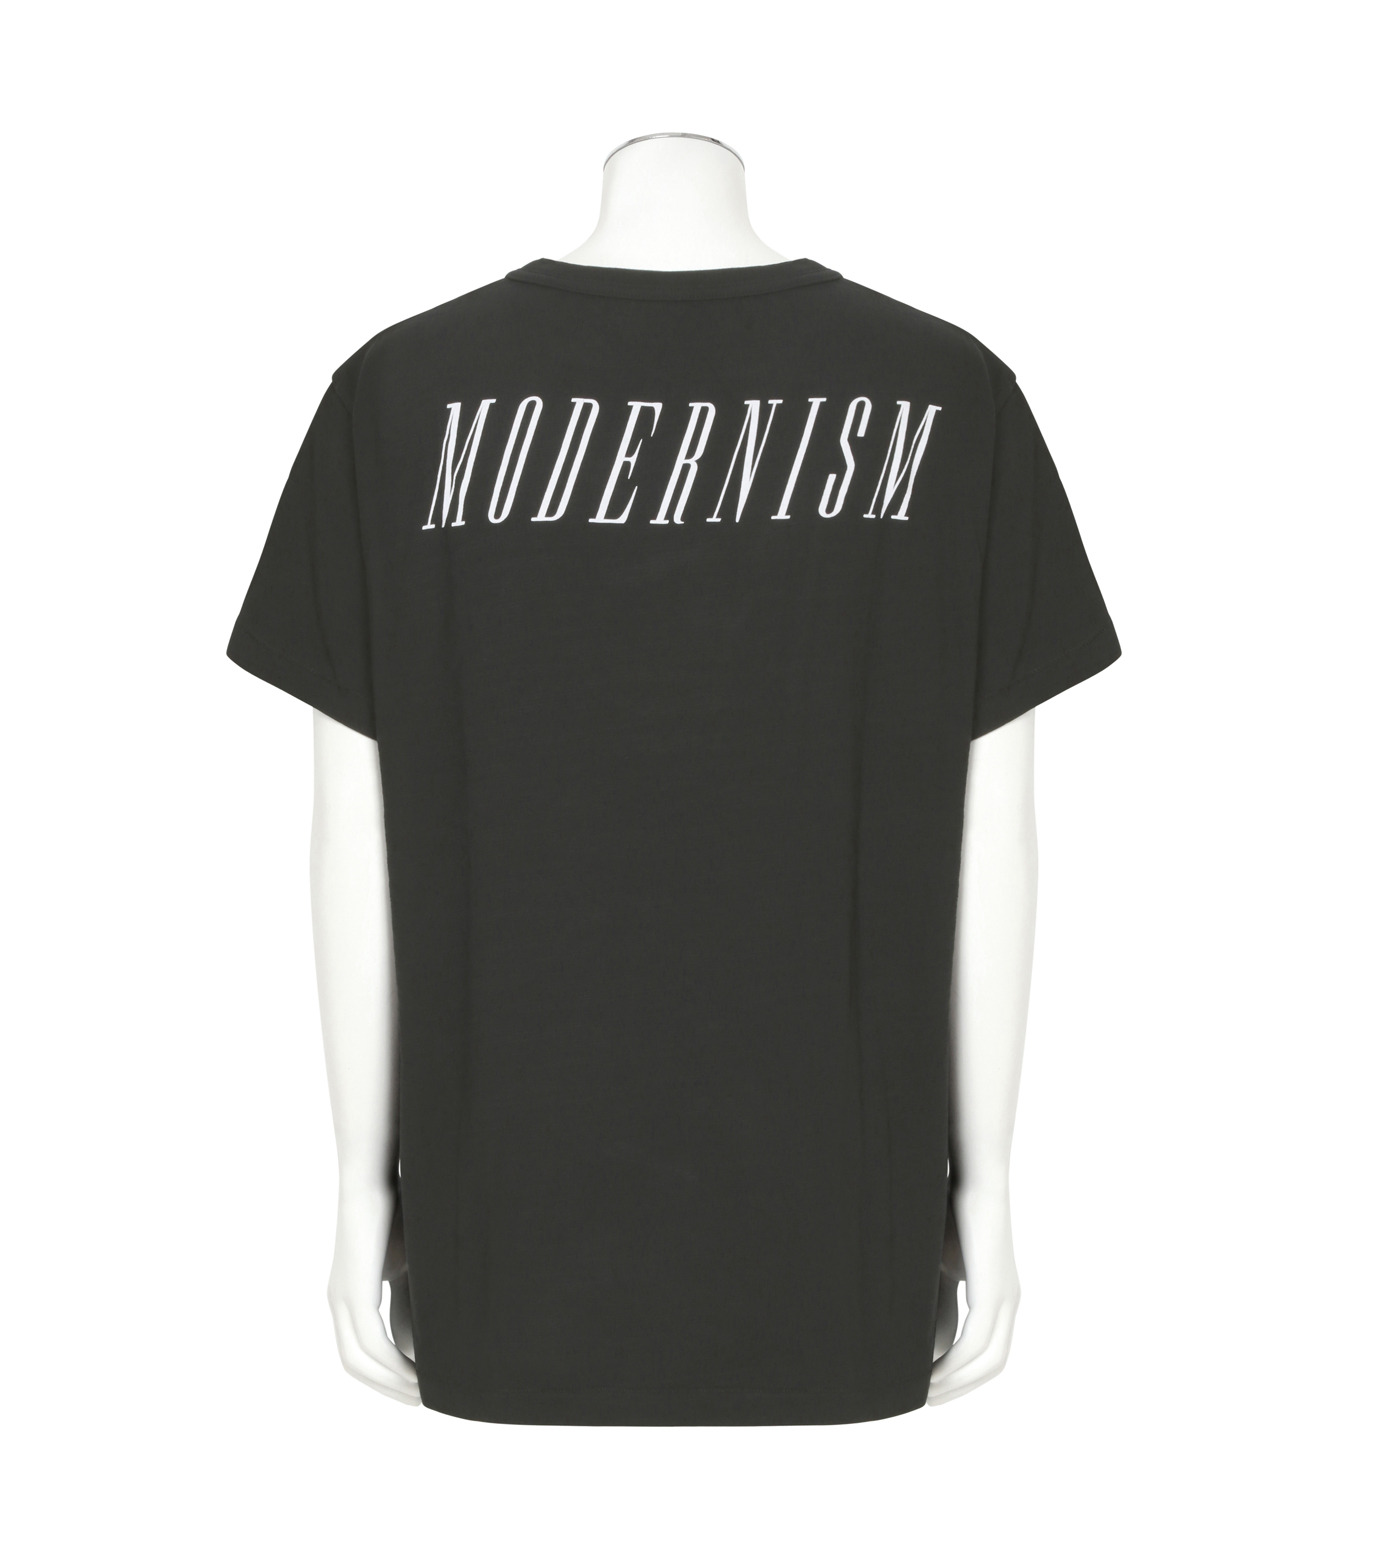 Off White(オフホワイト)のMODERNISM T-BLACK(カットソー/cut and sewn)-002S7001134-13 拡大詳細画像2